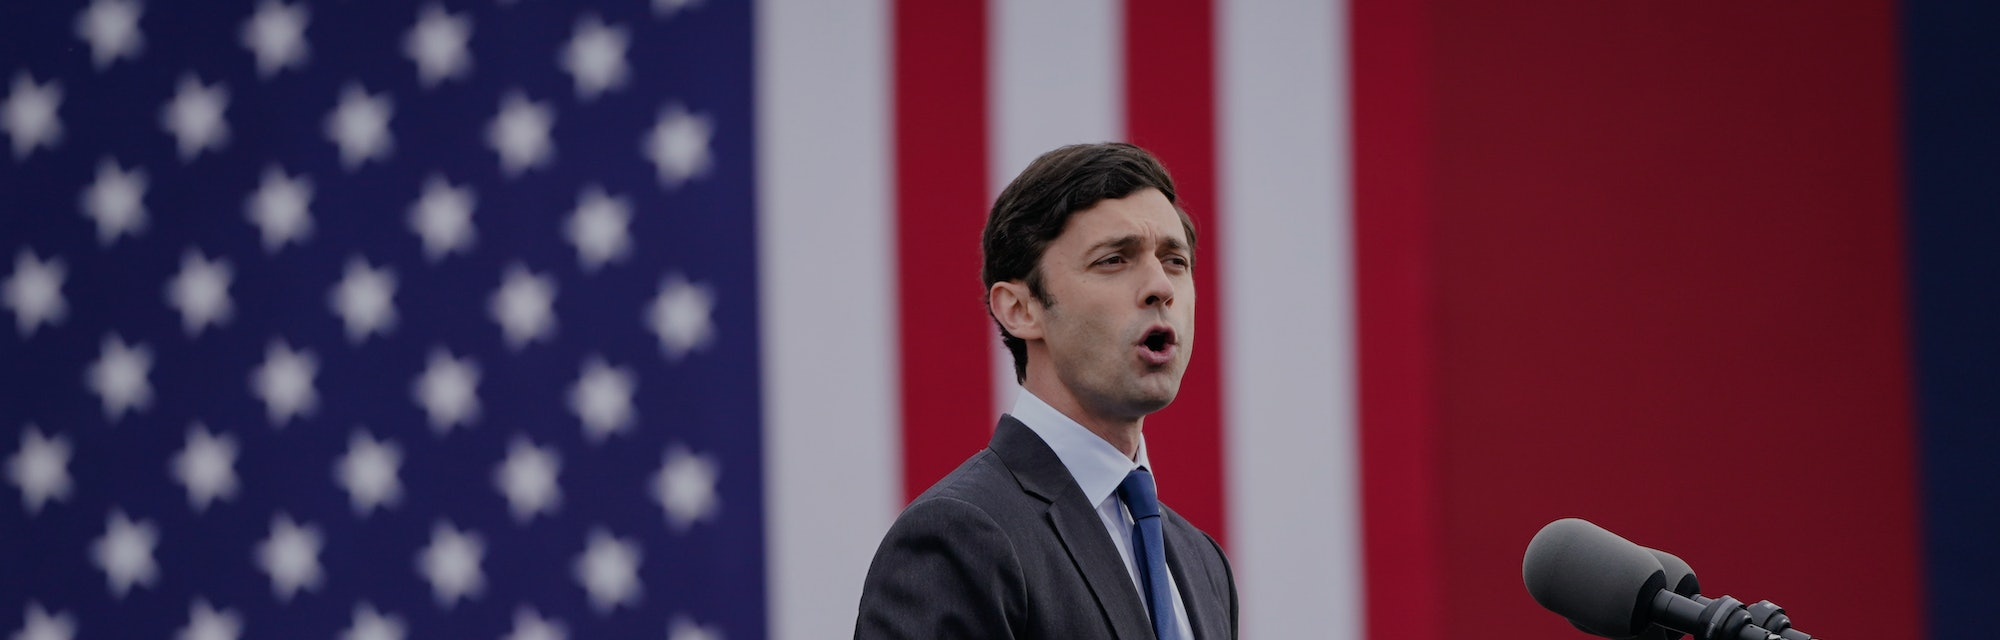 Jon Ossoff, candidate for Georgia Senate, speaking at a campaign rally.